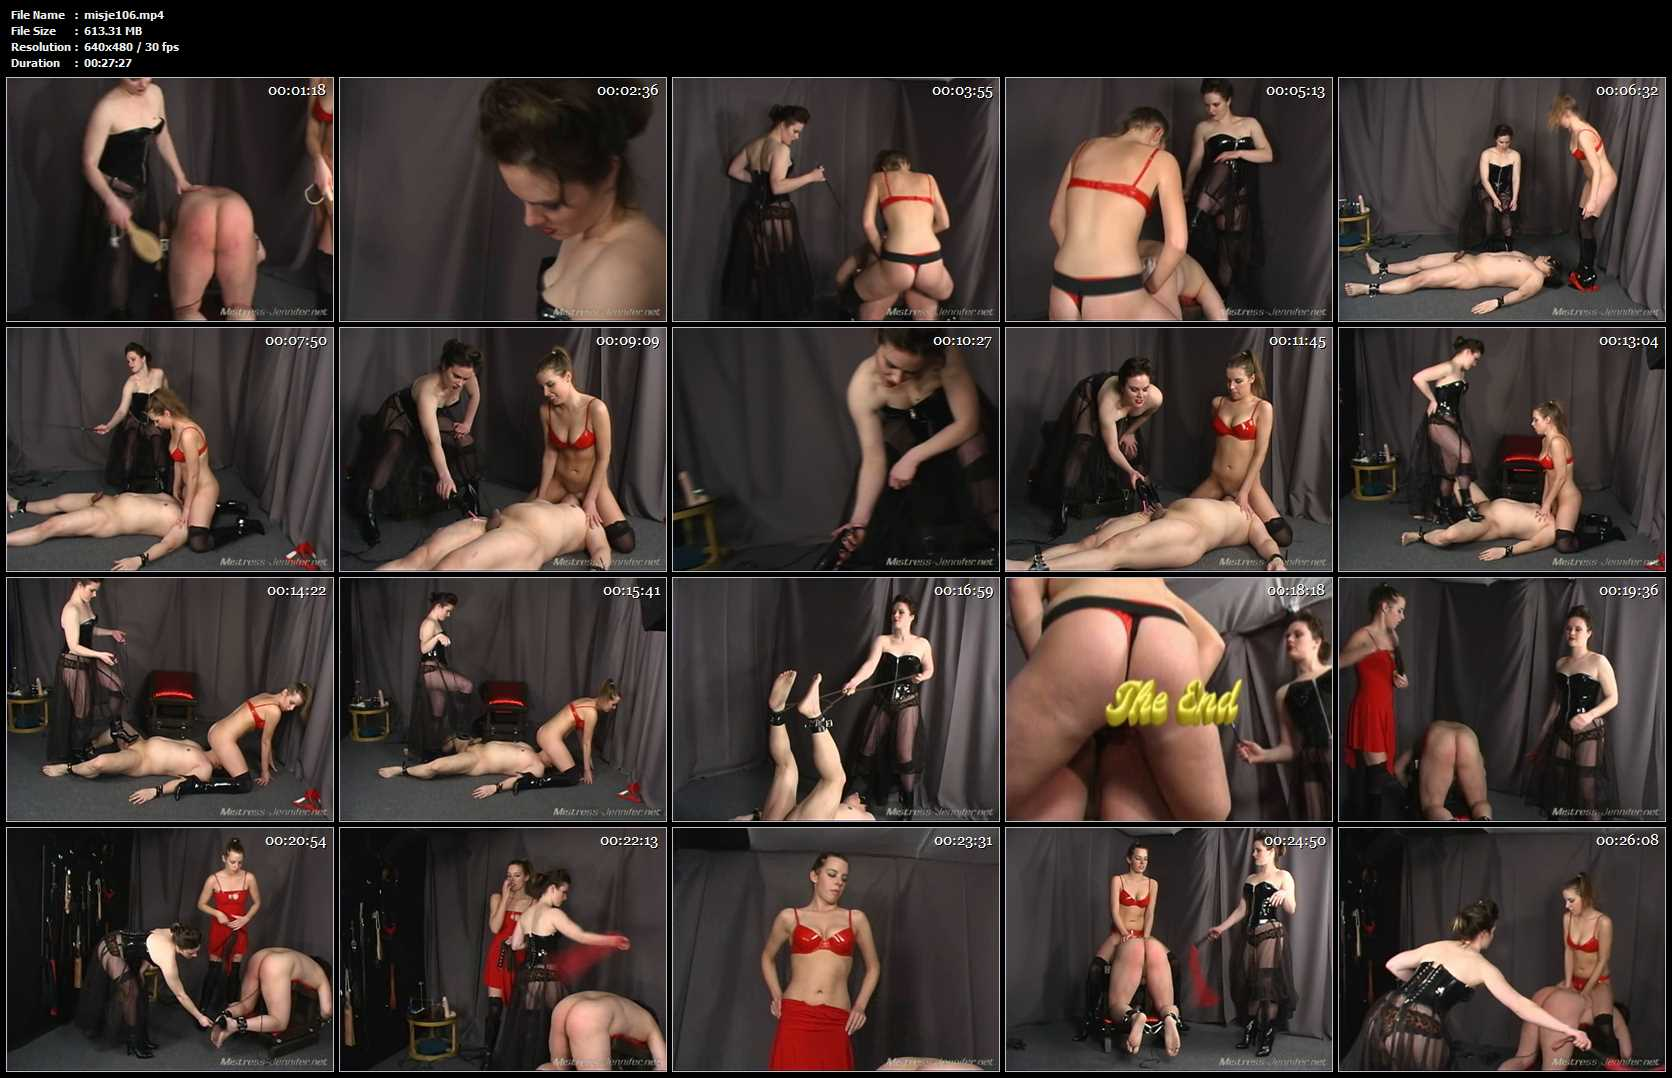 Mistress Noelle, Mistress Sarah In Scene: Lick Harder Full - MISTRESS-JENNIFER - SD/480p/MP4